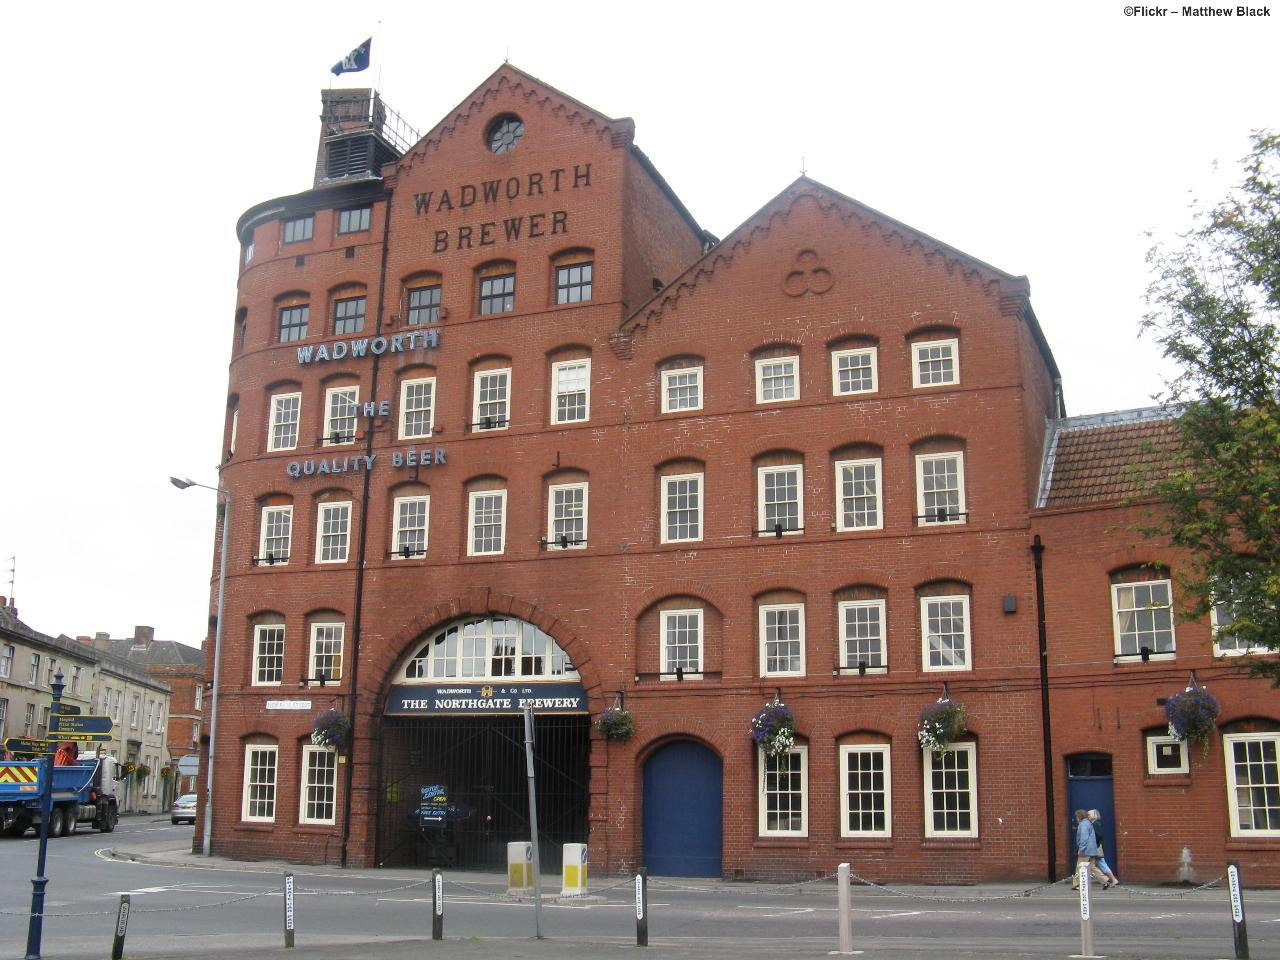 Wadworth Brewery Tours - Devizes - Thu 14th March 2019